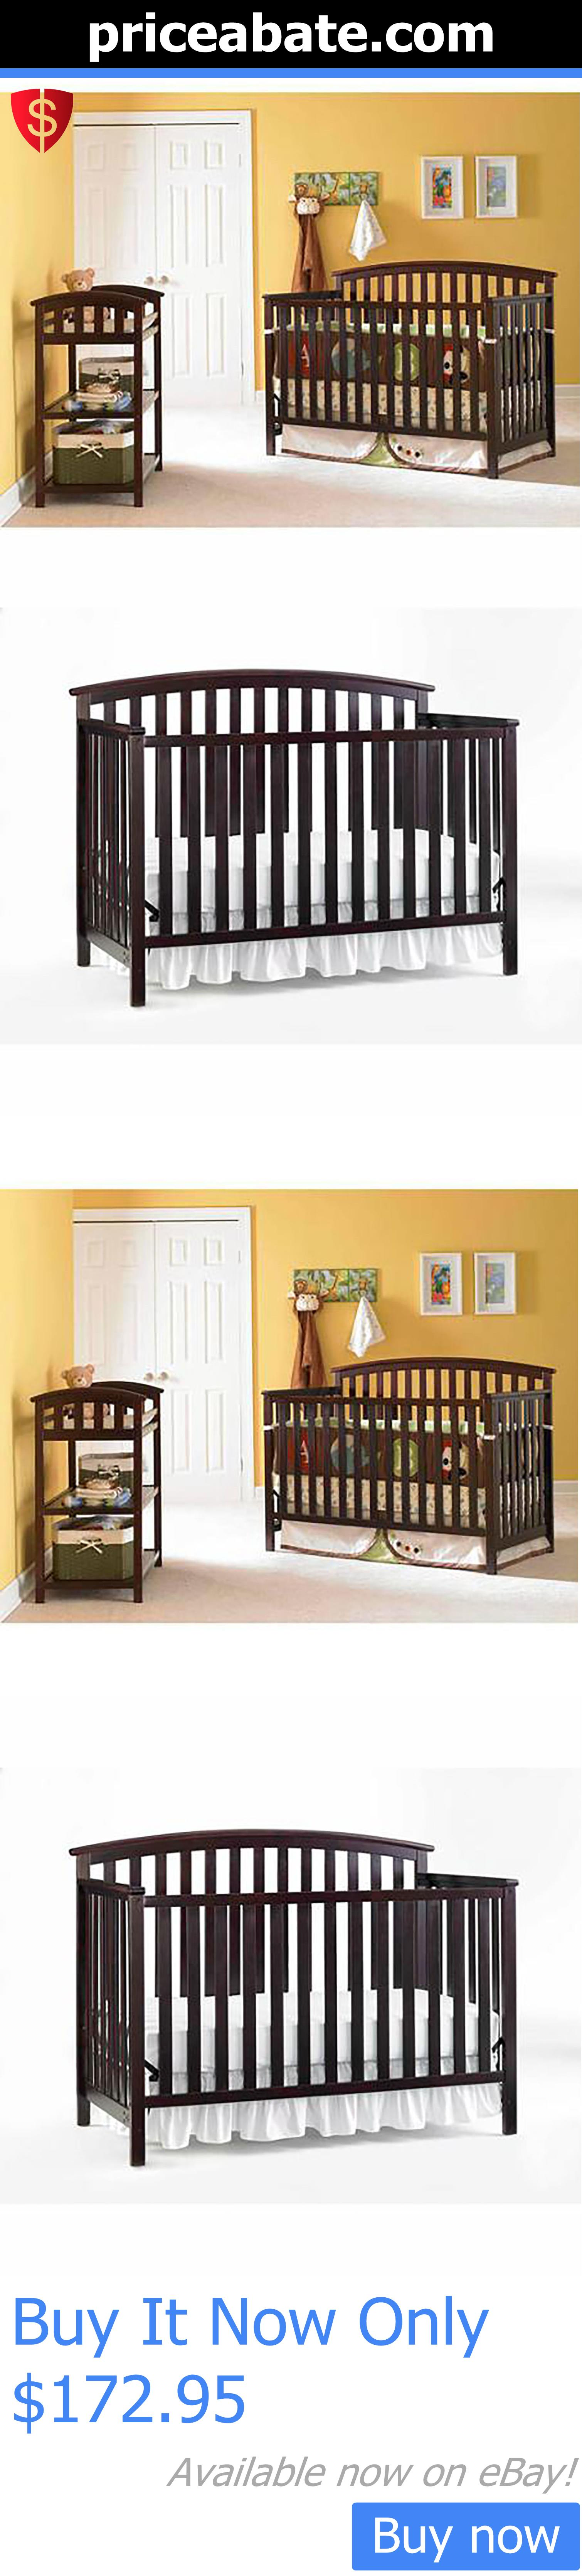 Graco crib for sale manila - Baby Nursery 4 In 1 Baby Toddler Convertible Bed Nursery Fixed Side Crib Graco Espresso Buy It Now Only 172 95 Priceabatebabynursery Or Pricea